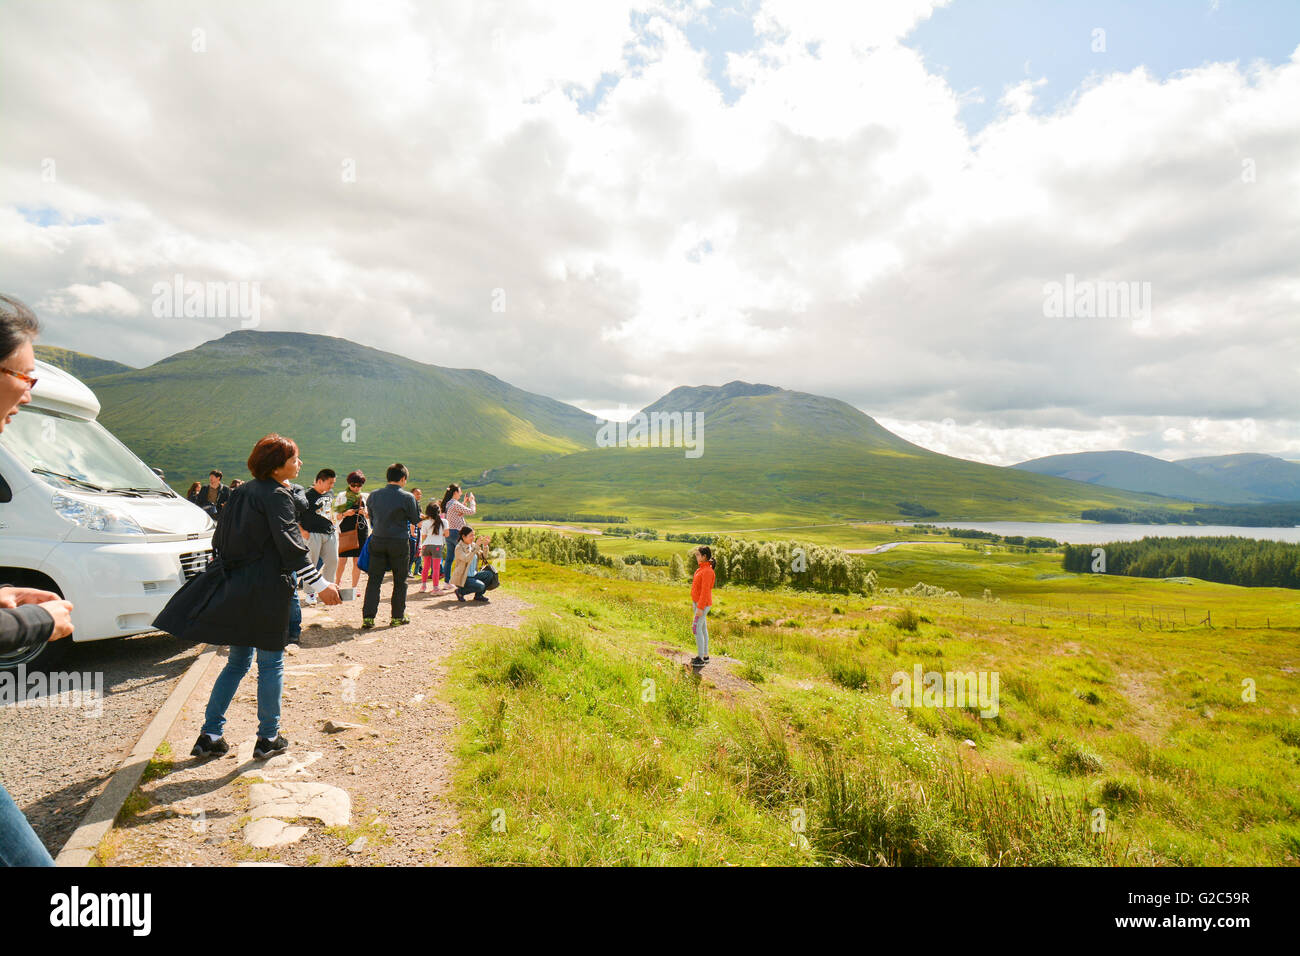 Glencoe tourists, Scottish Highlands, Scotland, UK - Stock Image